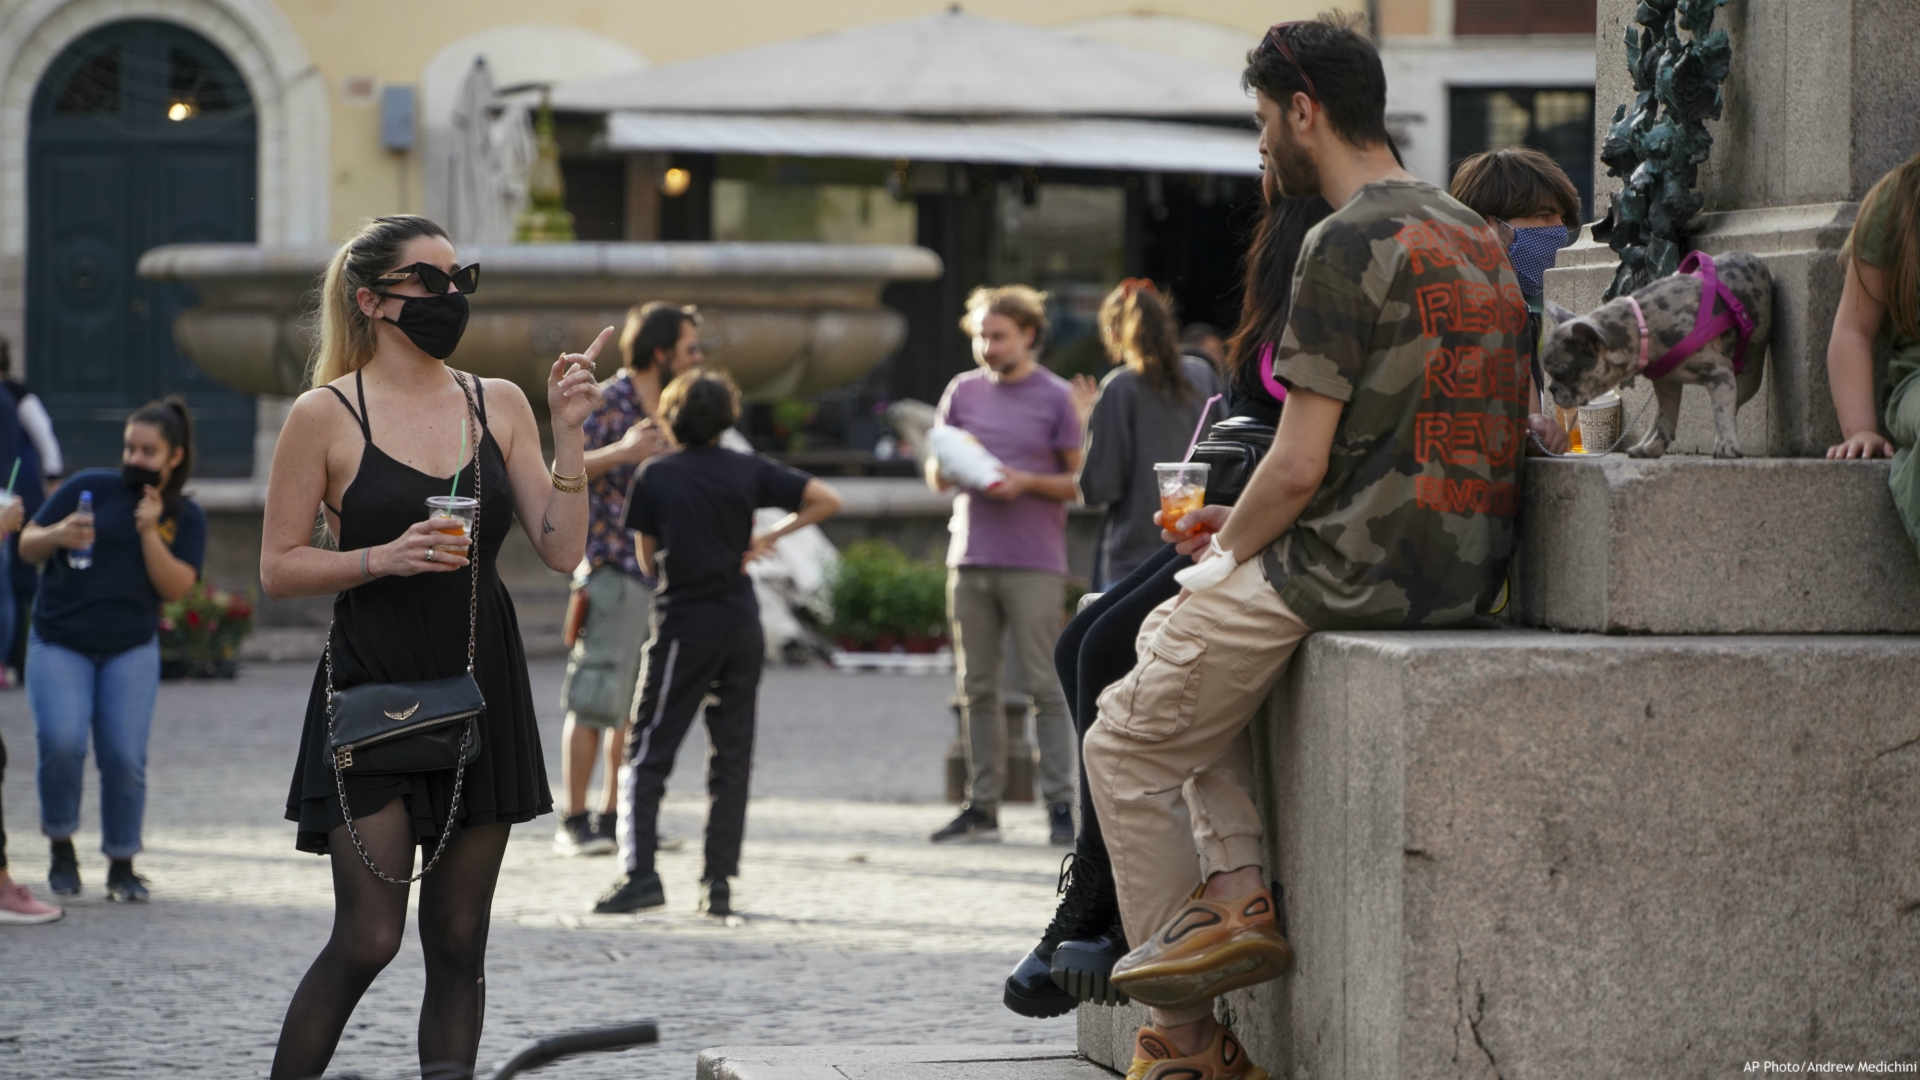 People enjoy a drink in Rome's fashionable Campo De' Fiori Square, as the city is slowly returning to life after the long shutdown due to the coronavirus outbreak, Friday, May 8, 2020. (AP Photo/Andrew Medichini)